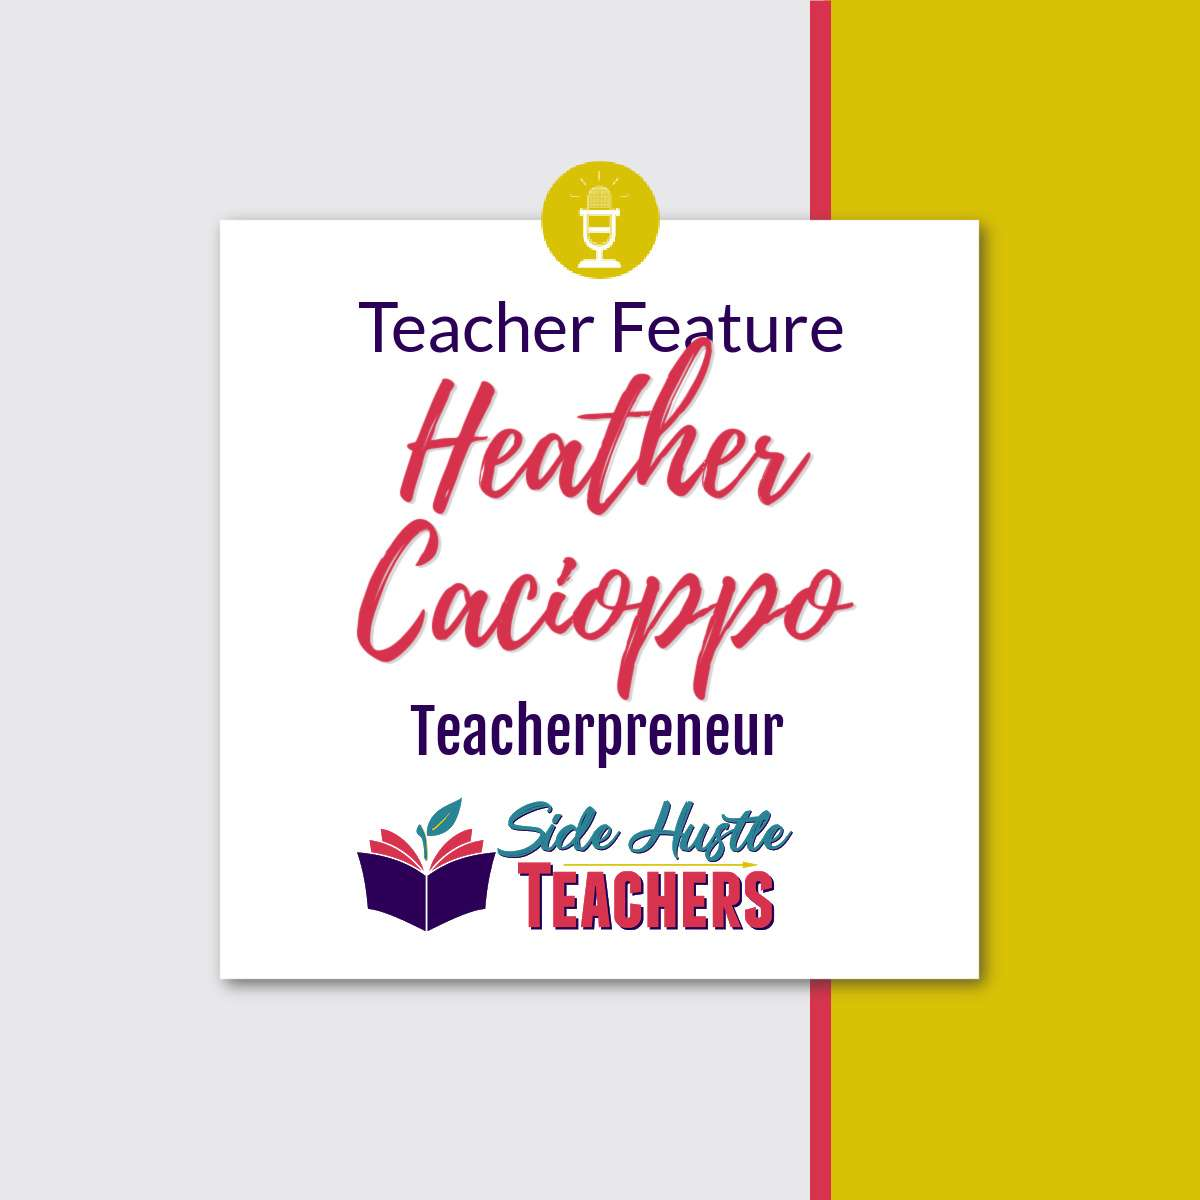 [Teacher Feature] Heather Cacioppo, Teacherpreneur